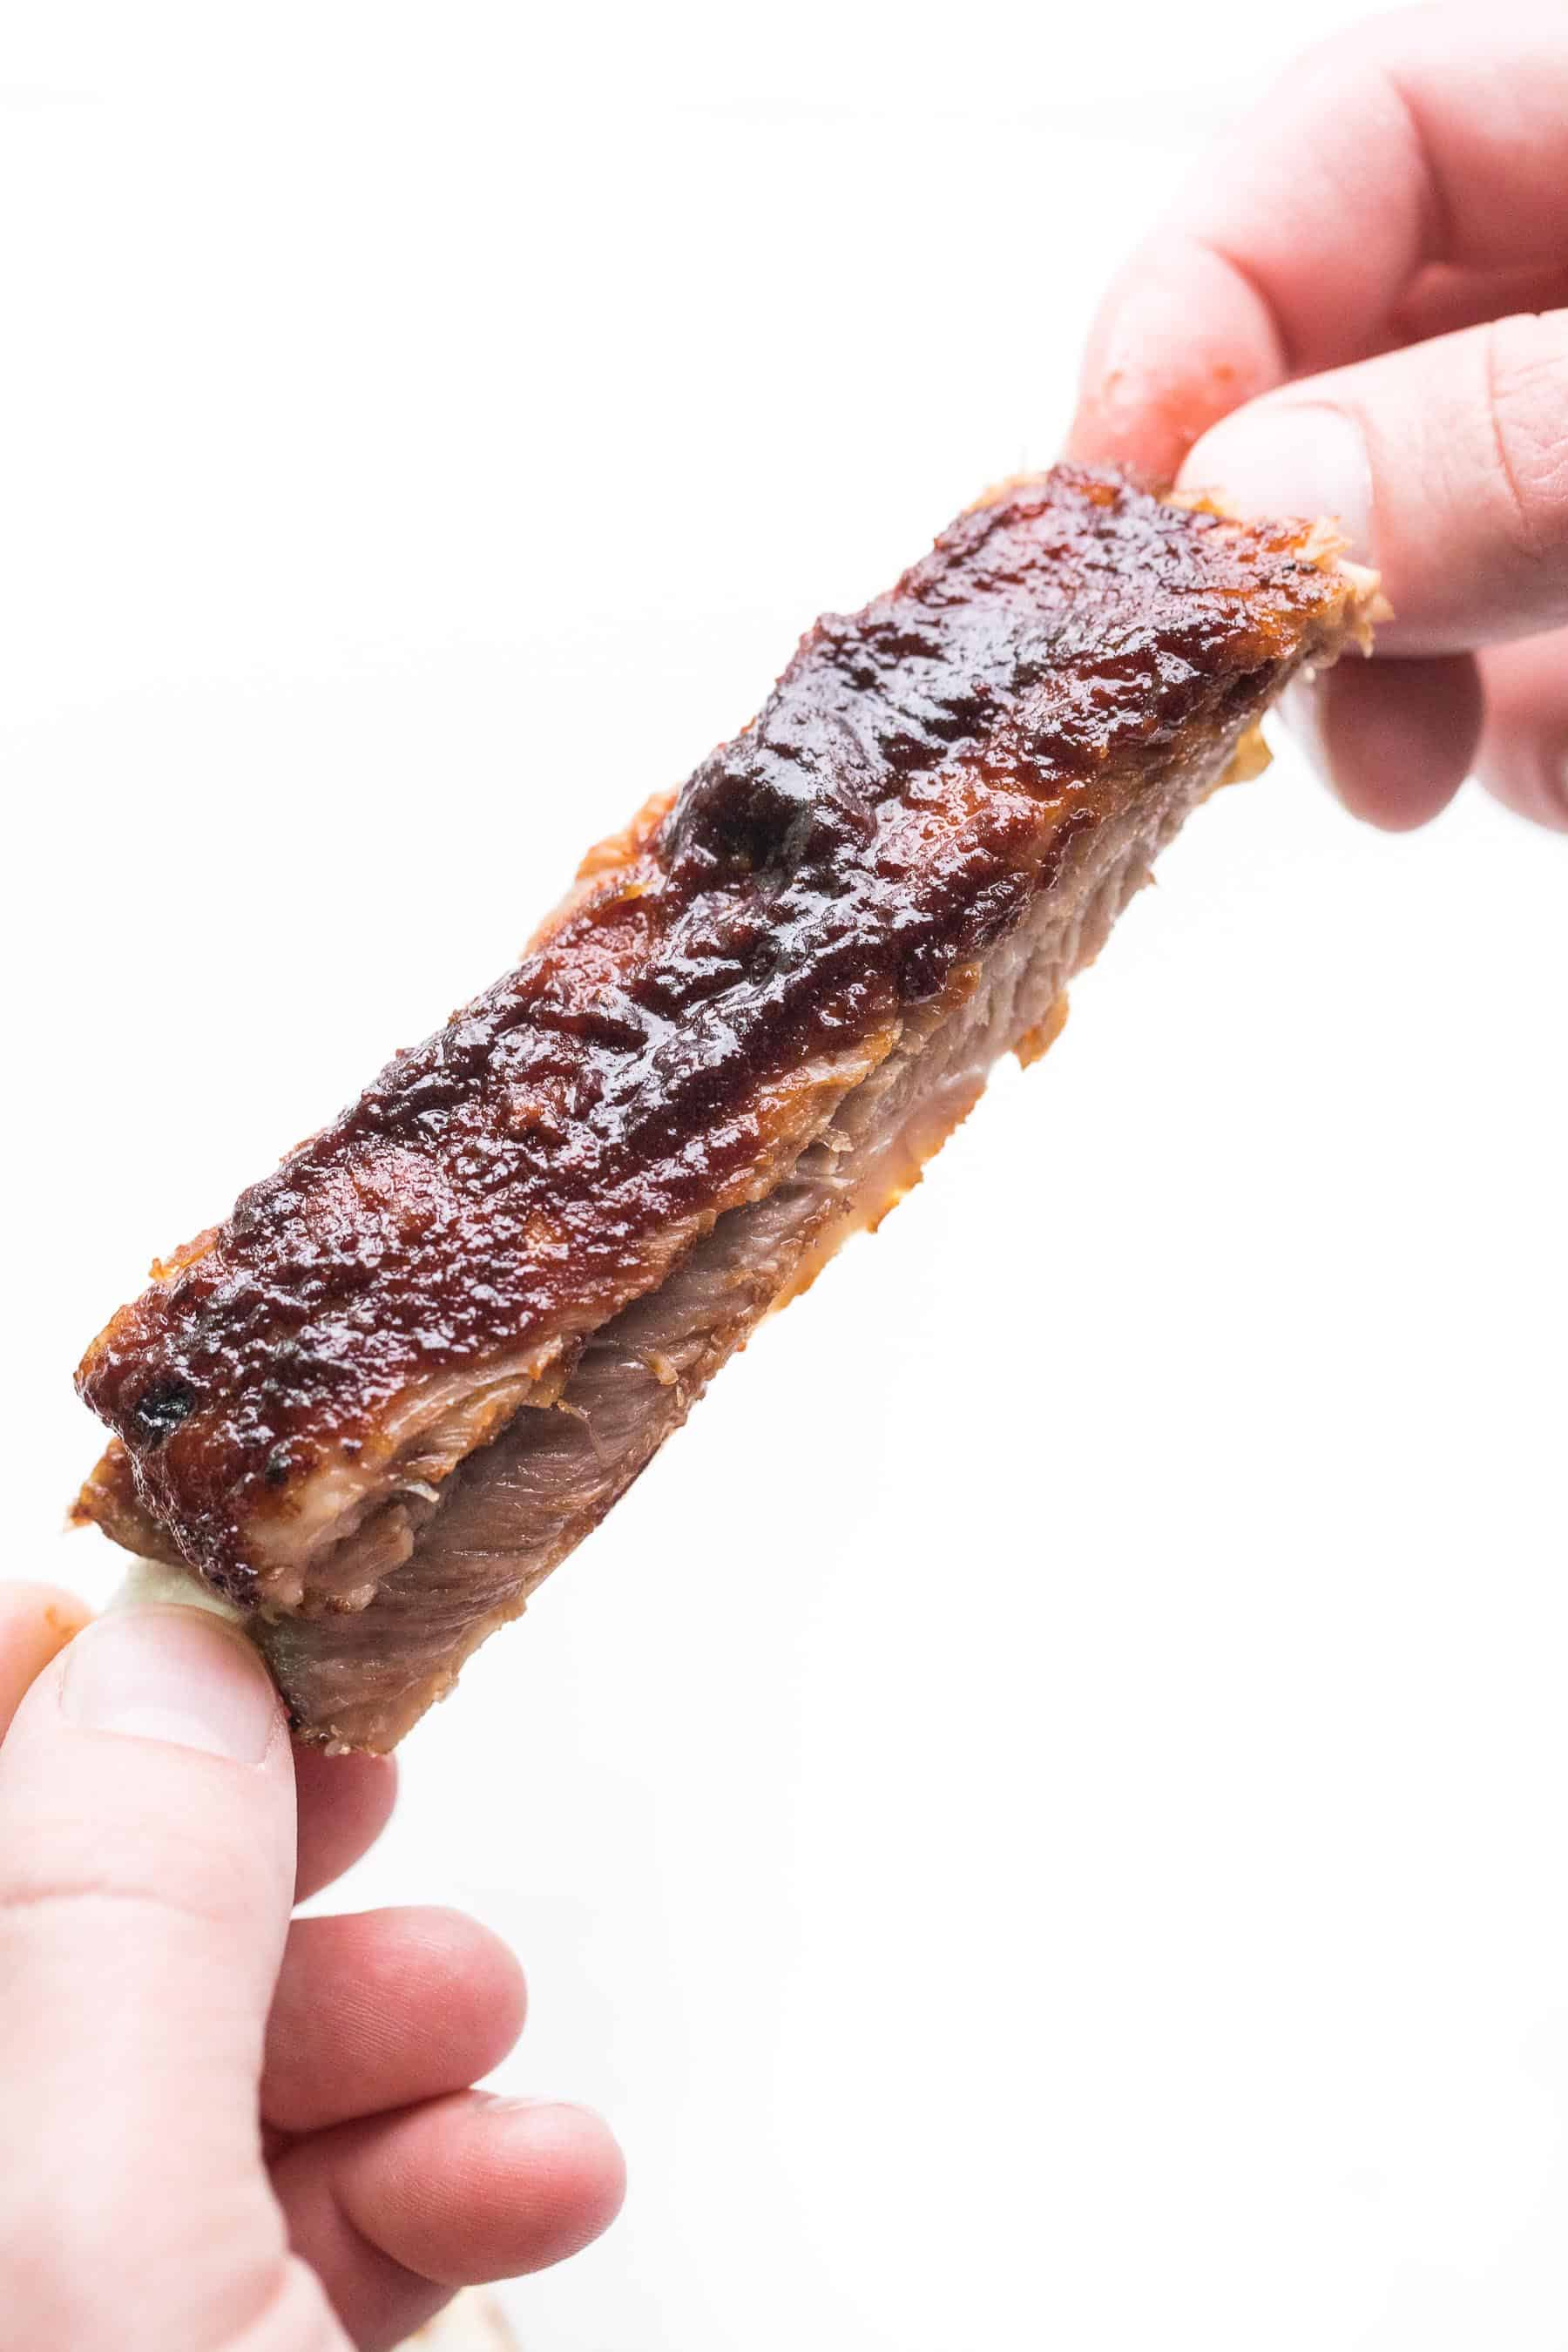 2 hands holding a bbq rib